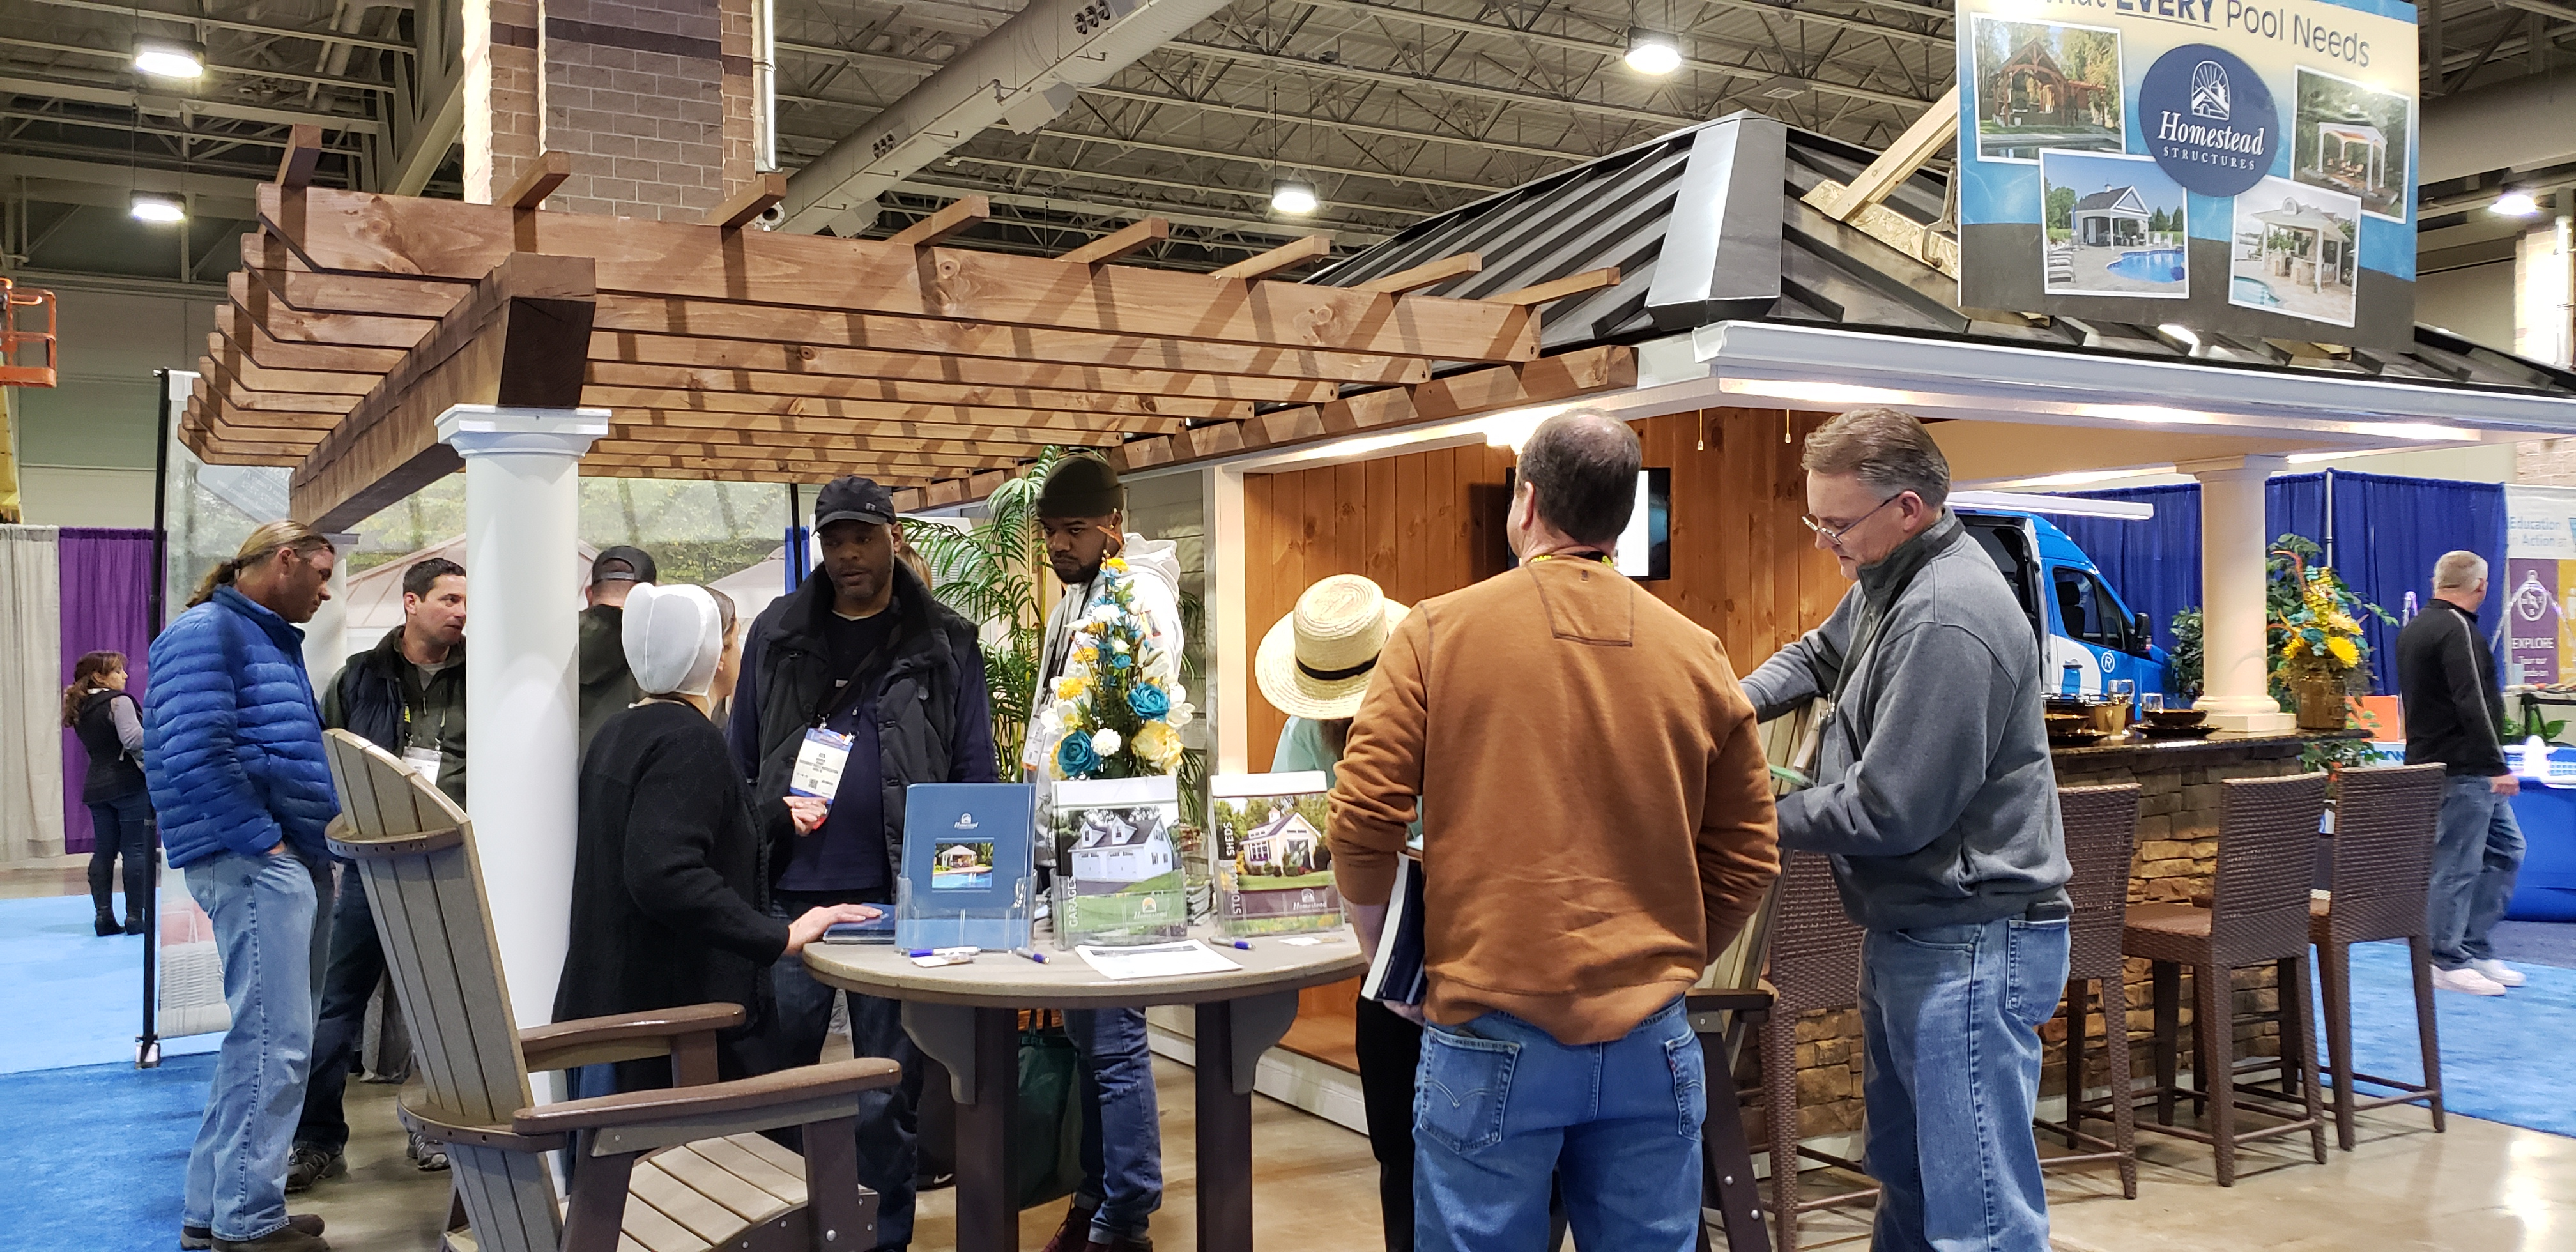 2019 Pool & Spa Show in Atlantic City